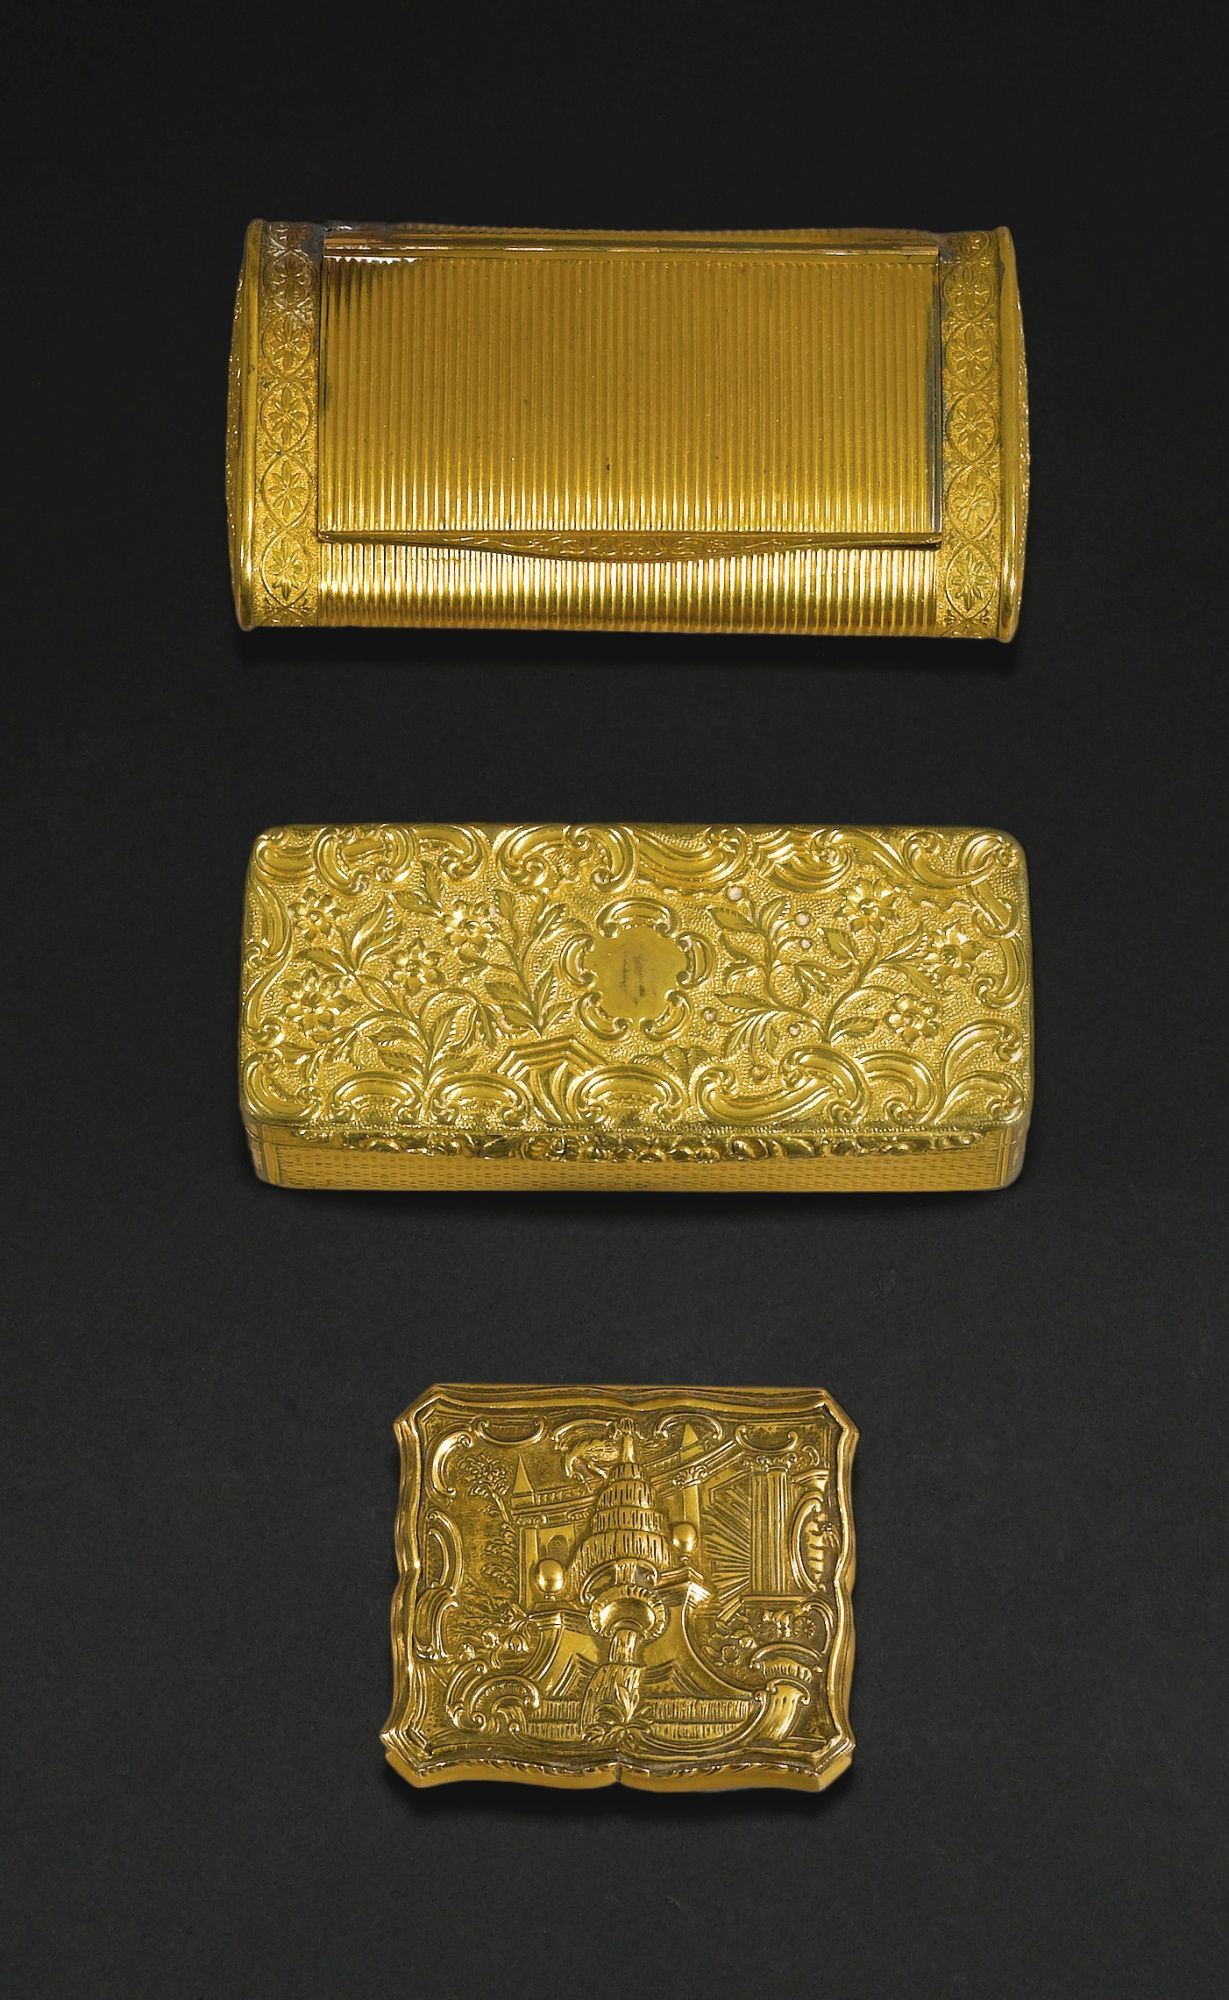 A small gold patch box, English or German, mid 18th century of shaped rectangular form, the lid chased with a rococo fountain, mirror-lined, later French control marks, 4.7 cm., 1 1/2 in.; a doublé snuff box, rectangular, oval section, reeded within neo-classical borders, lid interior with later Crewe monogram below an Earl's coronet and inscribed: Rue for remembrance, maker's mark rubbed, 16th gold quantity, circa 1825; and an oblong engine-turned gilt-metal snuff box with flowered lid and…